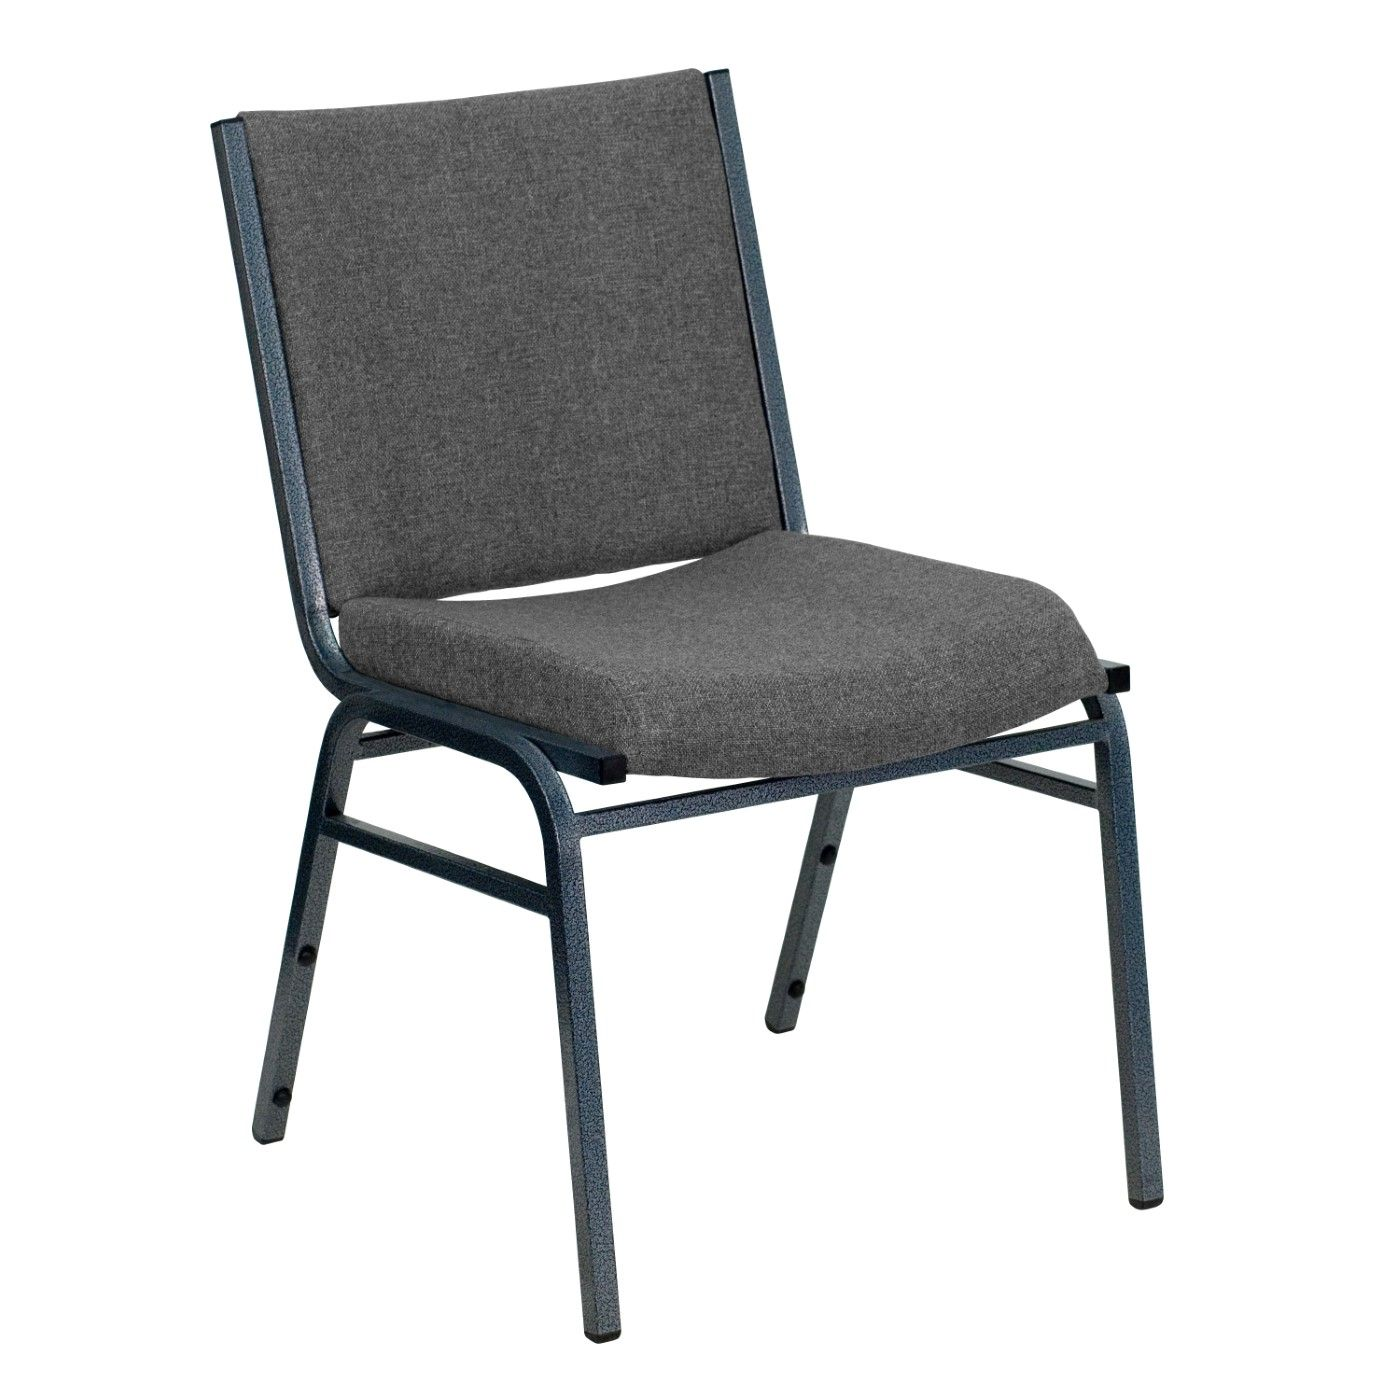 TOUGH ENOUGH Series Heavy Duty Gray Fabric Stack Chair